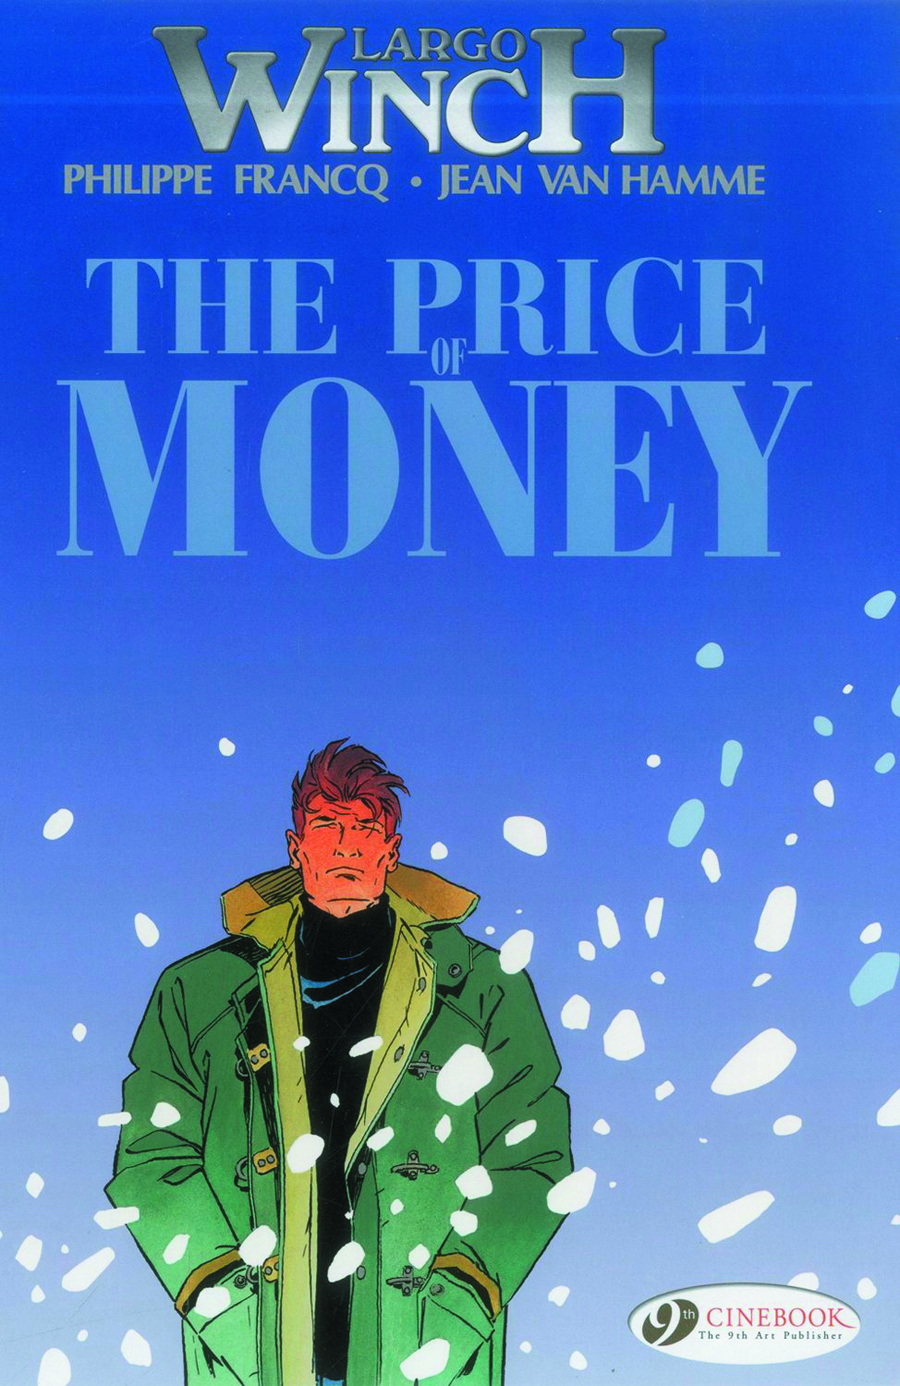 LARGO WINCH GN VOL 09 PRICE OF MONEY